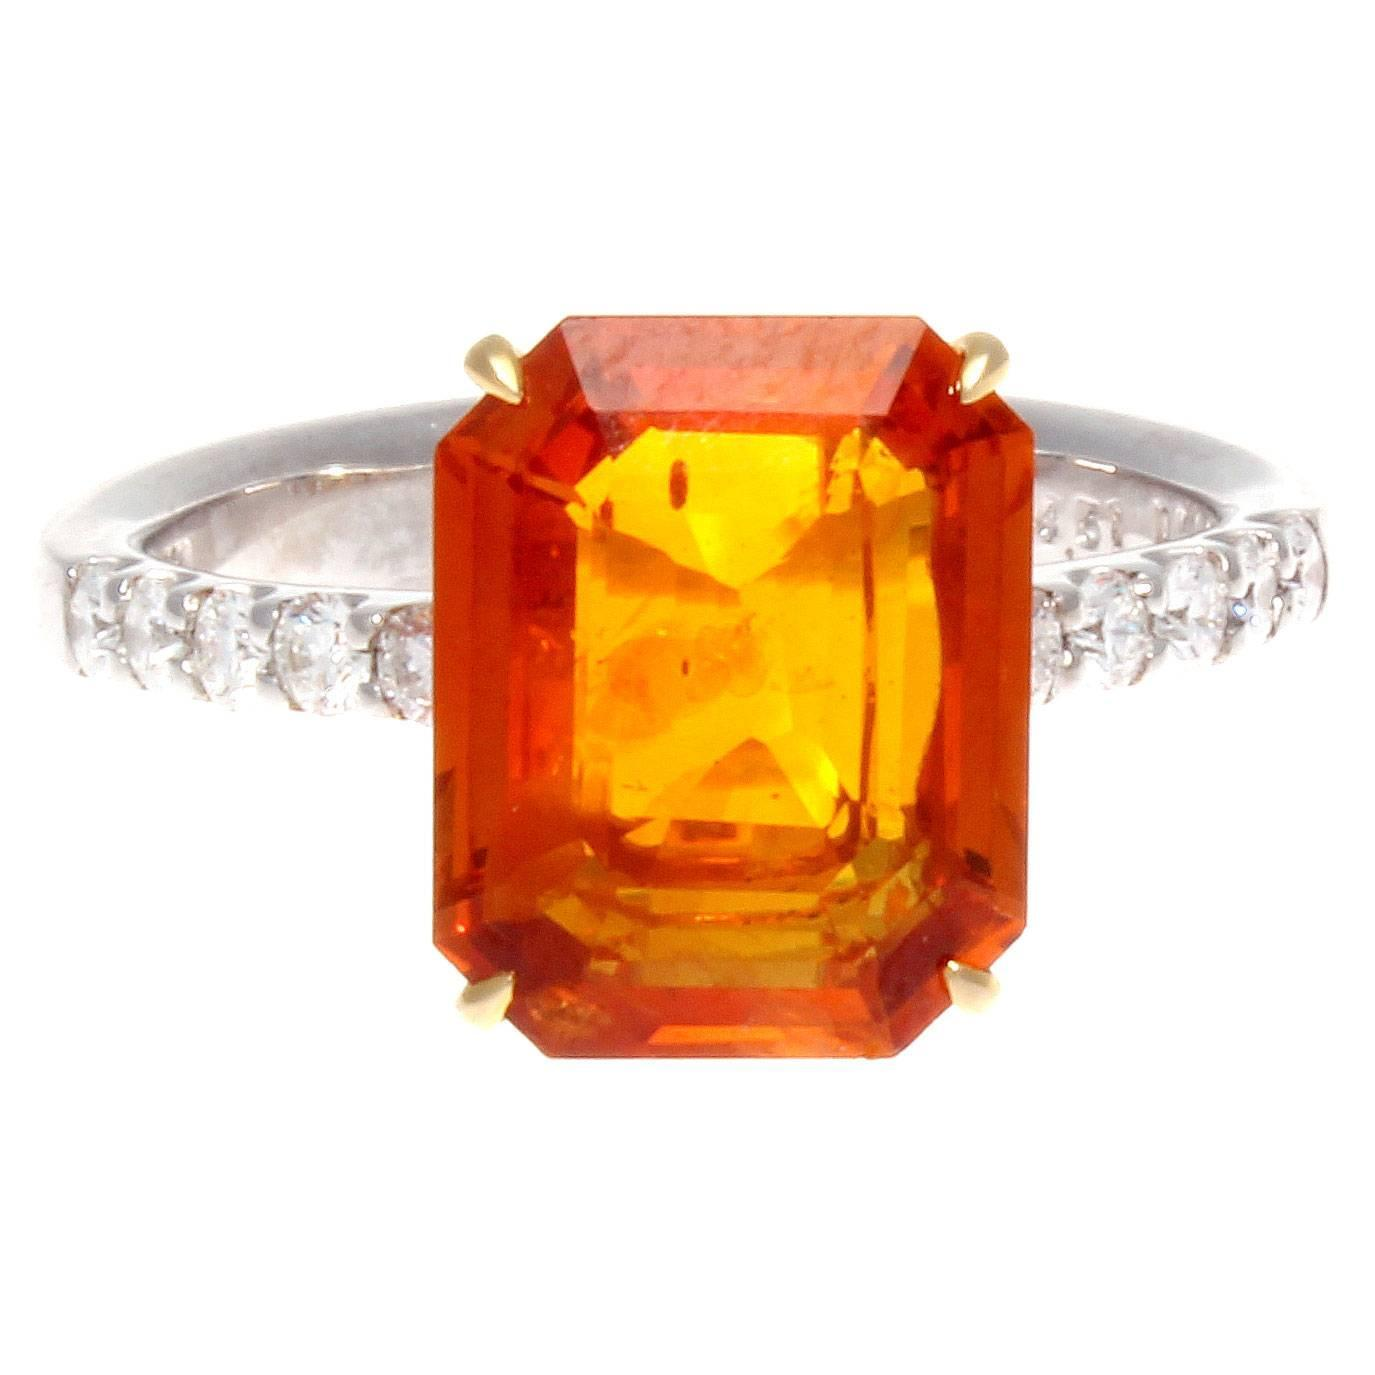 4 51 carat orange sapphire gold engagement